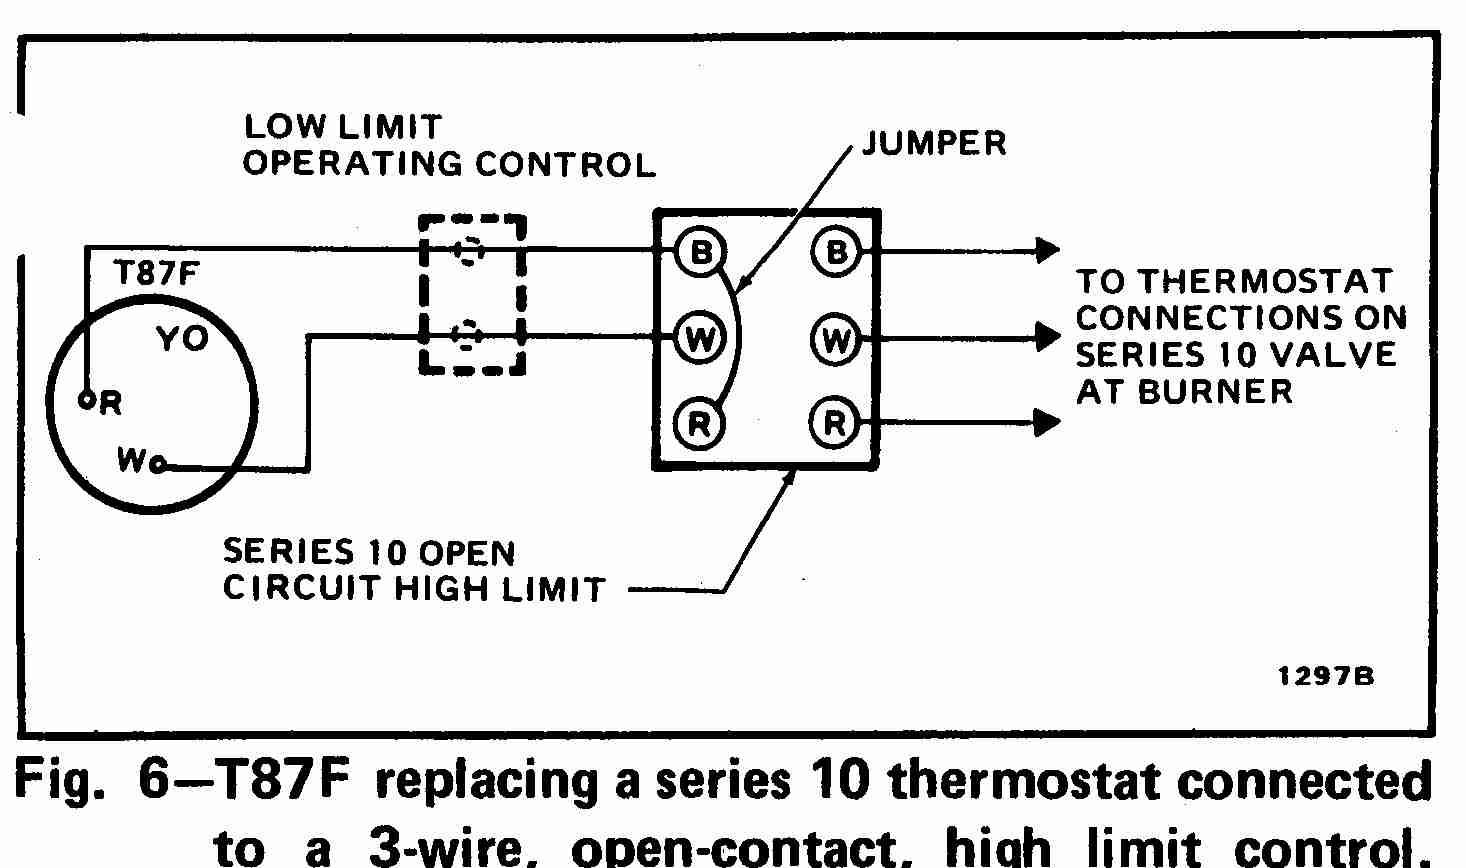 Wiring Diagram Wires On Low Voltage Wiring Diagram For Boiler